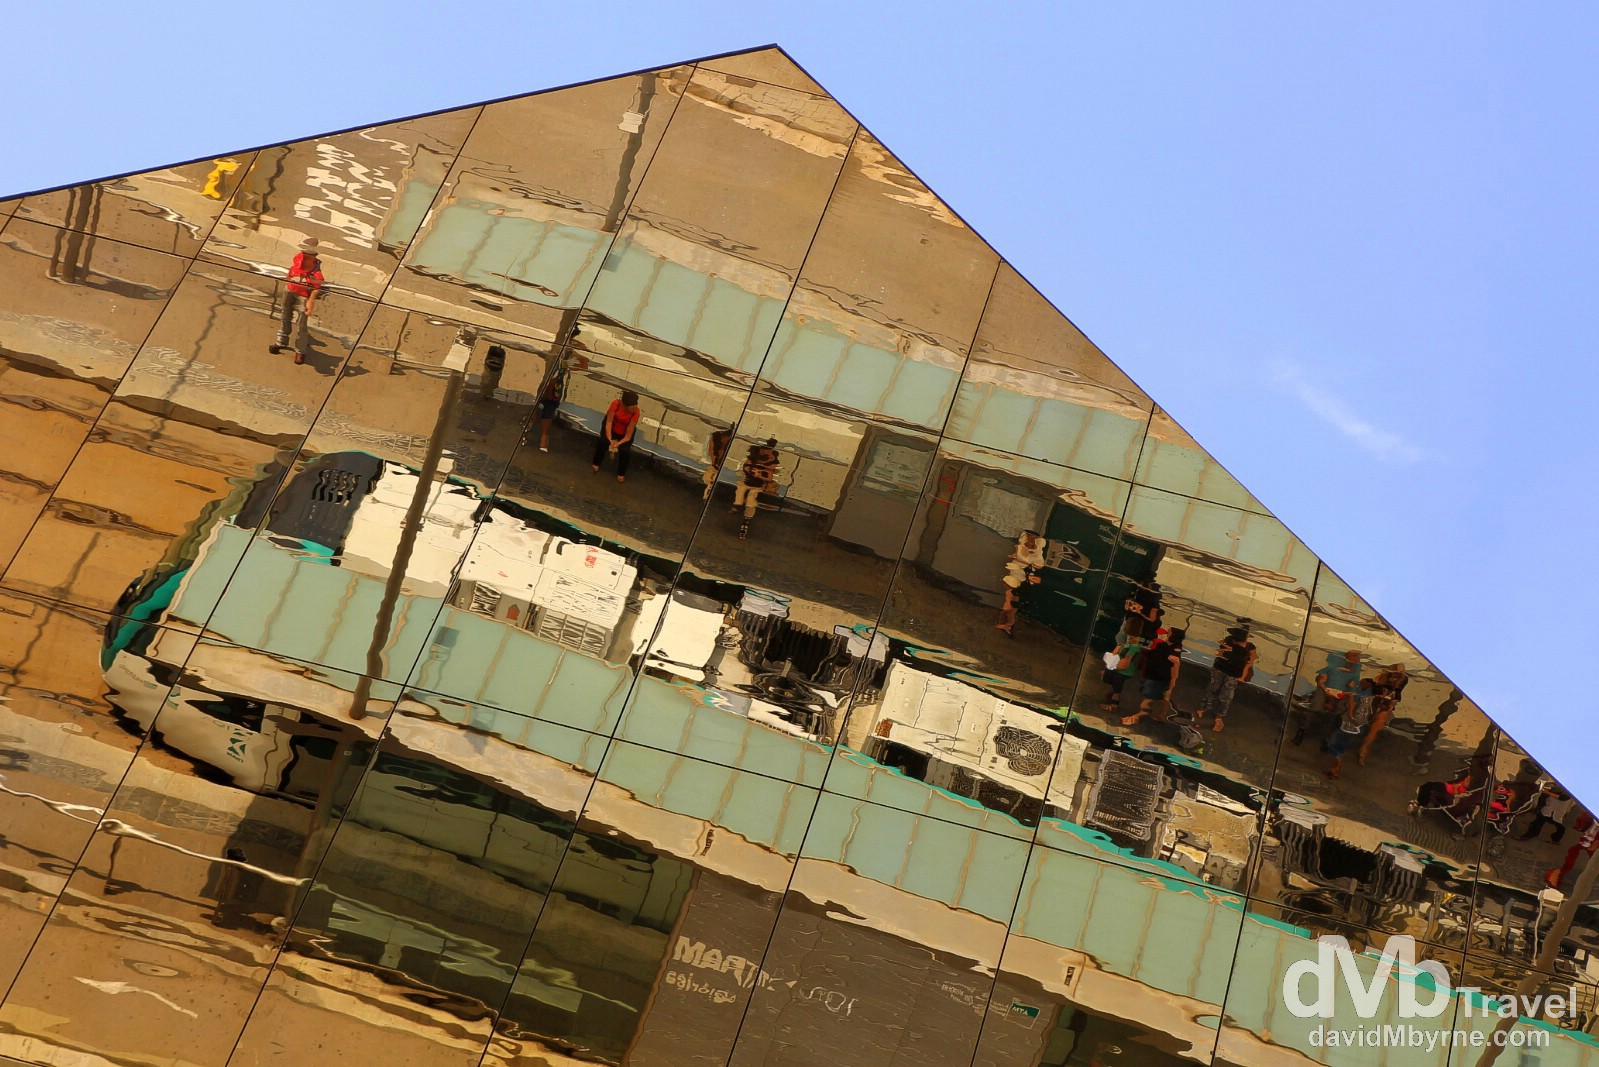 Overhead tram stop reflections on Avenue Meridiana in Barcelona, Spain. June 17th, 2014.